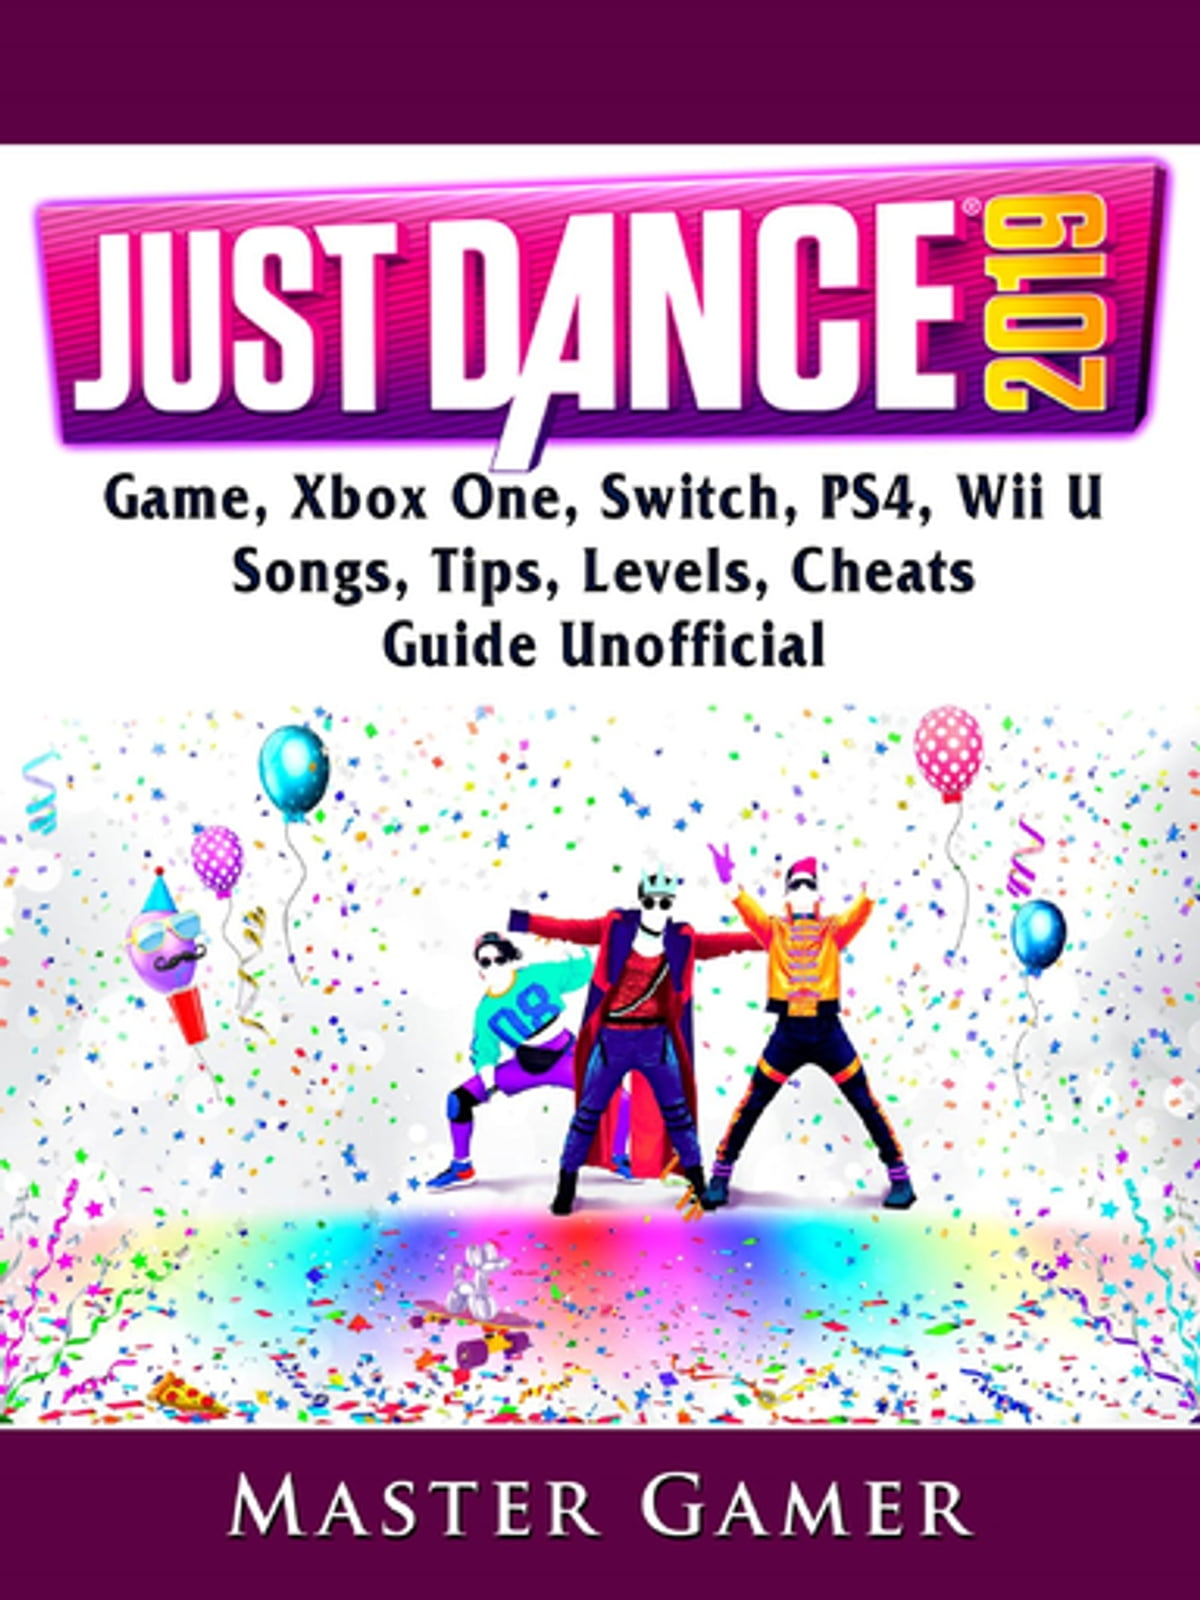 Just Dance 2019 Game, Xbox One, Switch, PS4, Wii U, Songs, Tips, Levels,  Cheats, Guide Unofficial ebook by Master Gamer - Rakuten Kobo